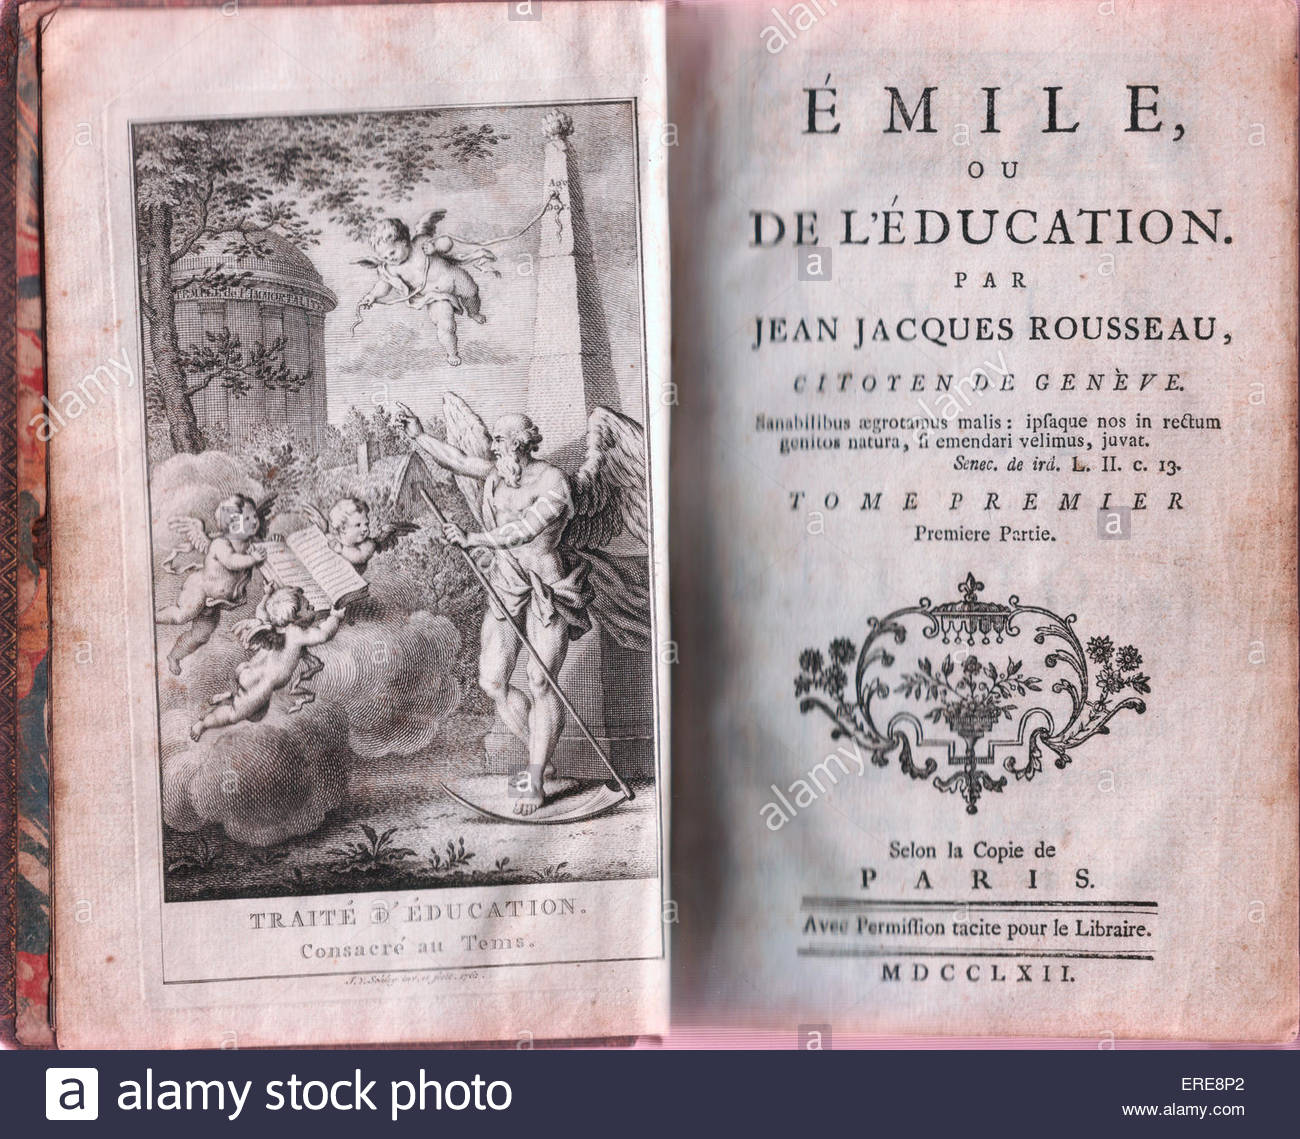 emile-or-on-education-by-jean-jacques-rousseau-french-philosopher-ERE8P2.jpg